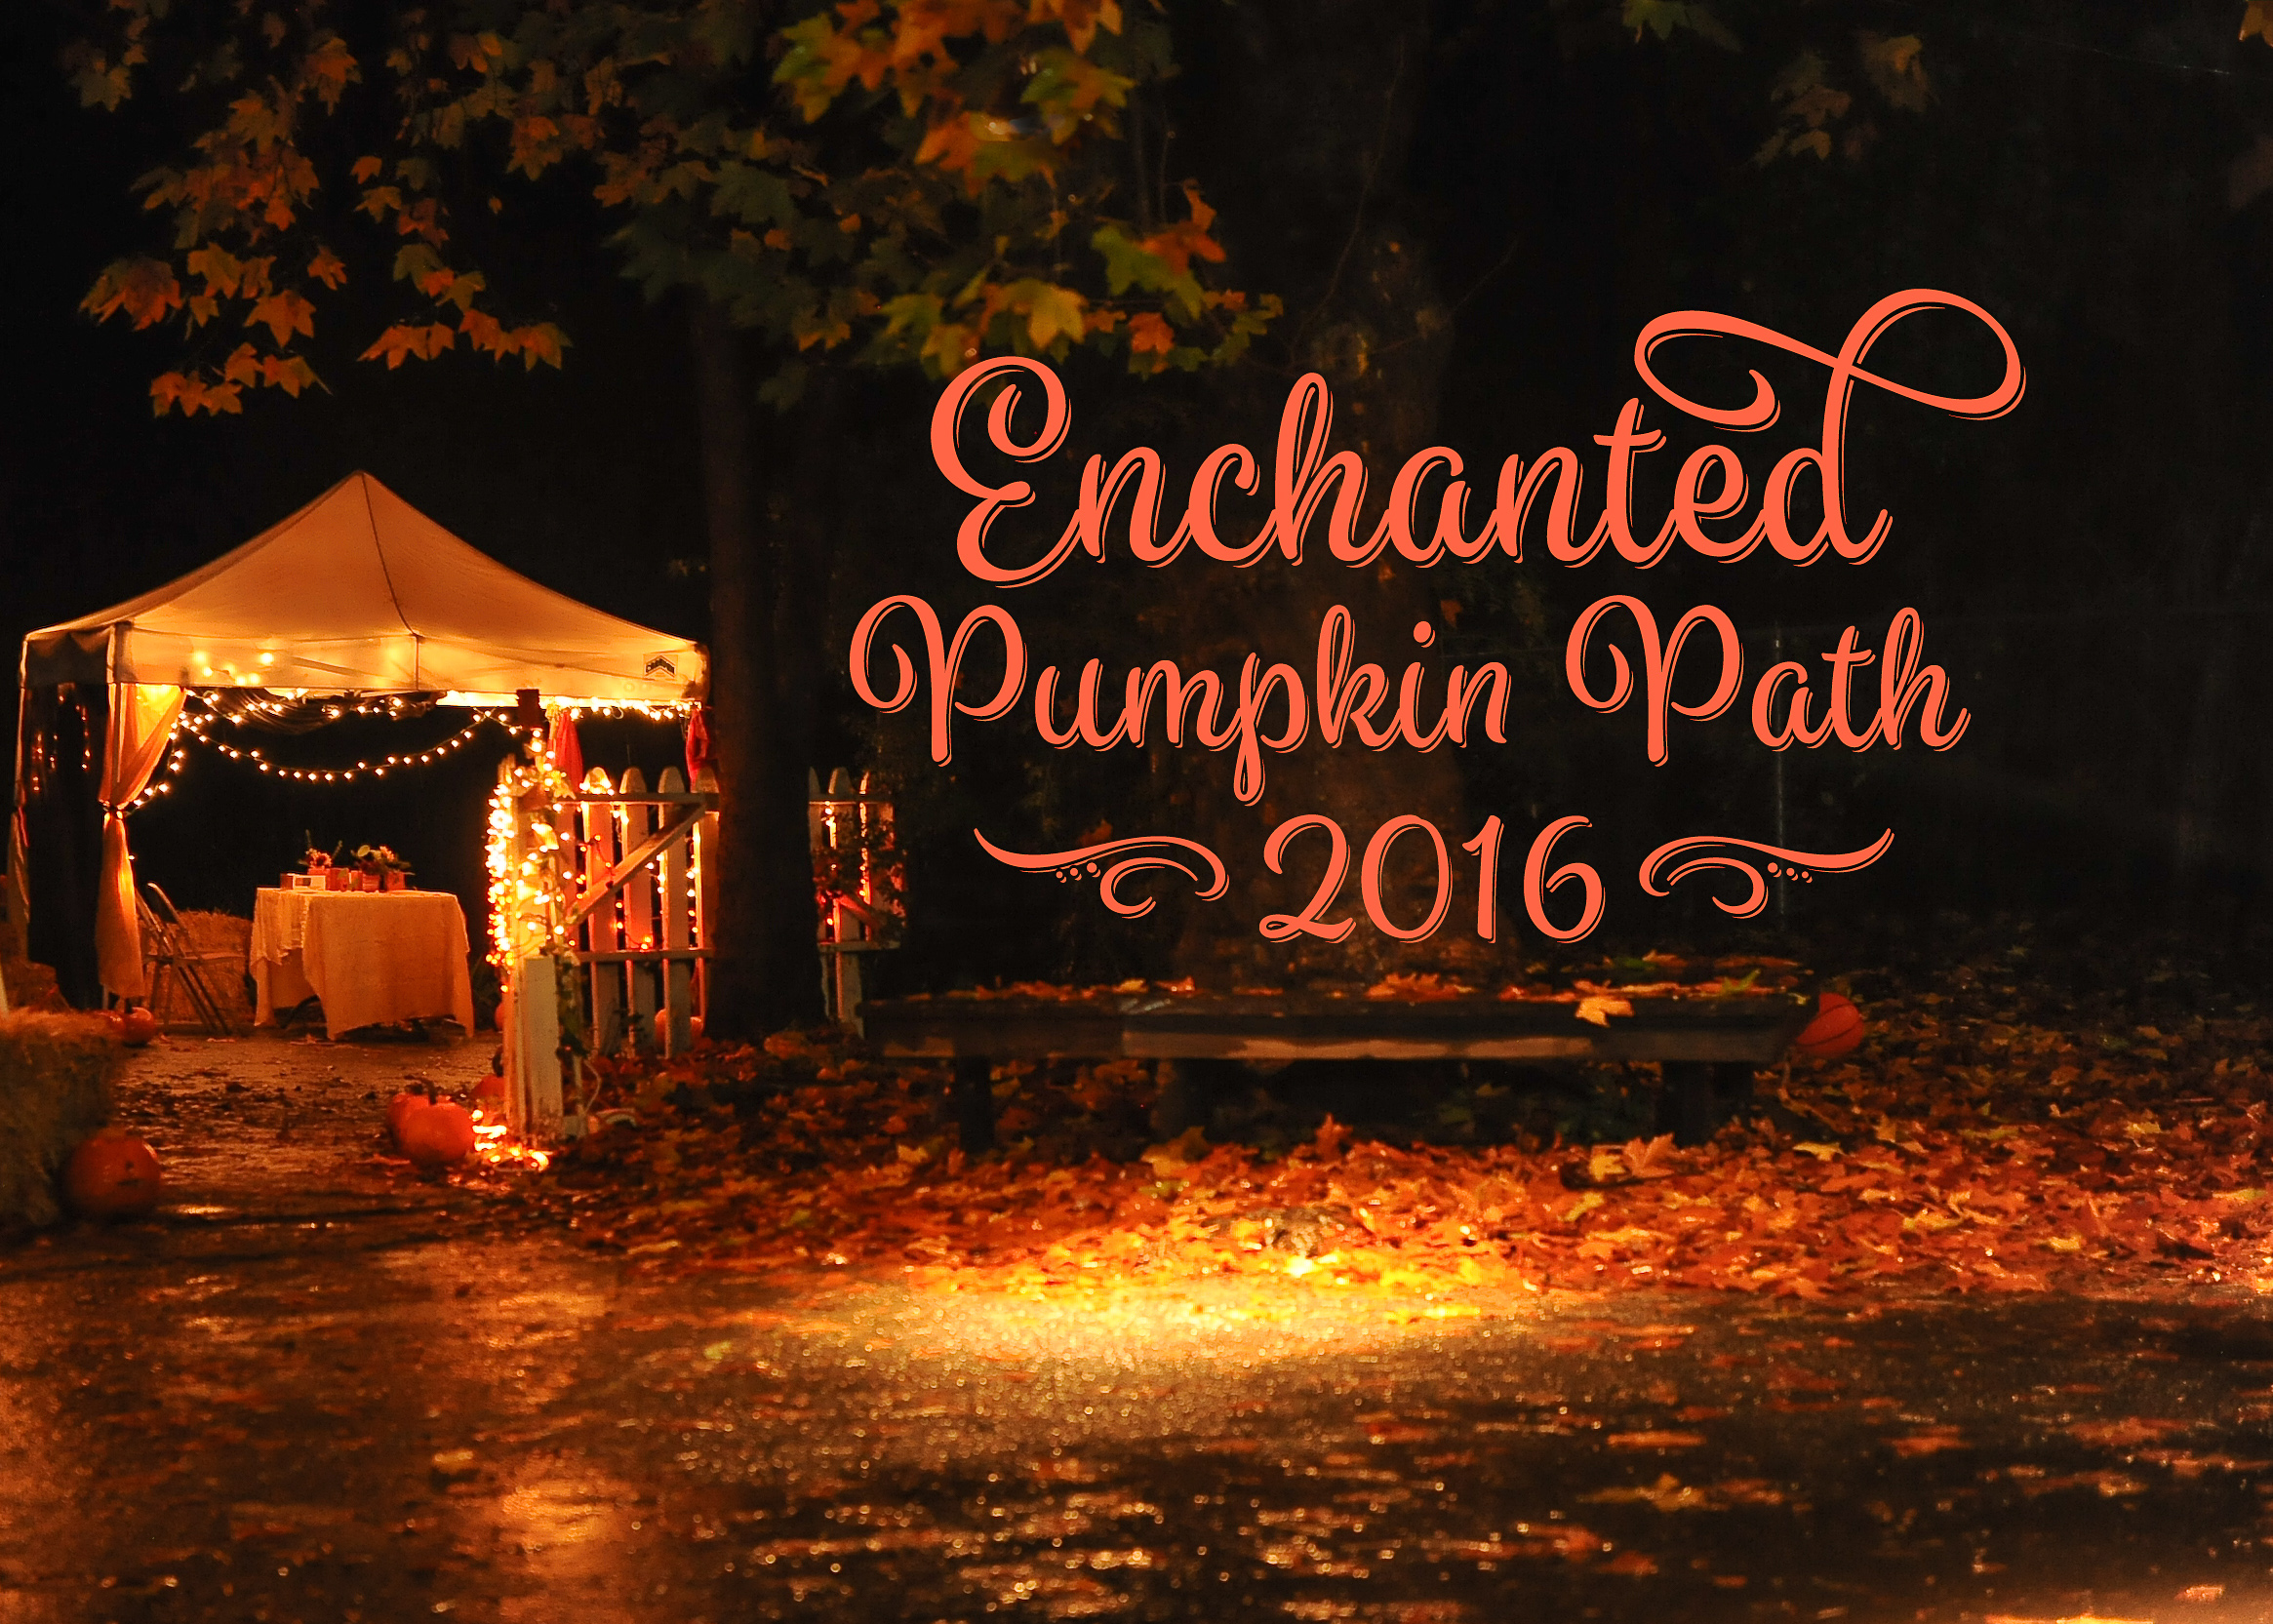 Pumpkin Path 2016-1.jpg